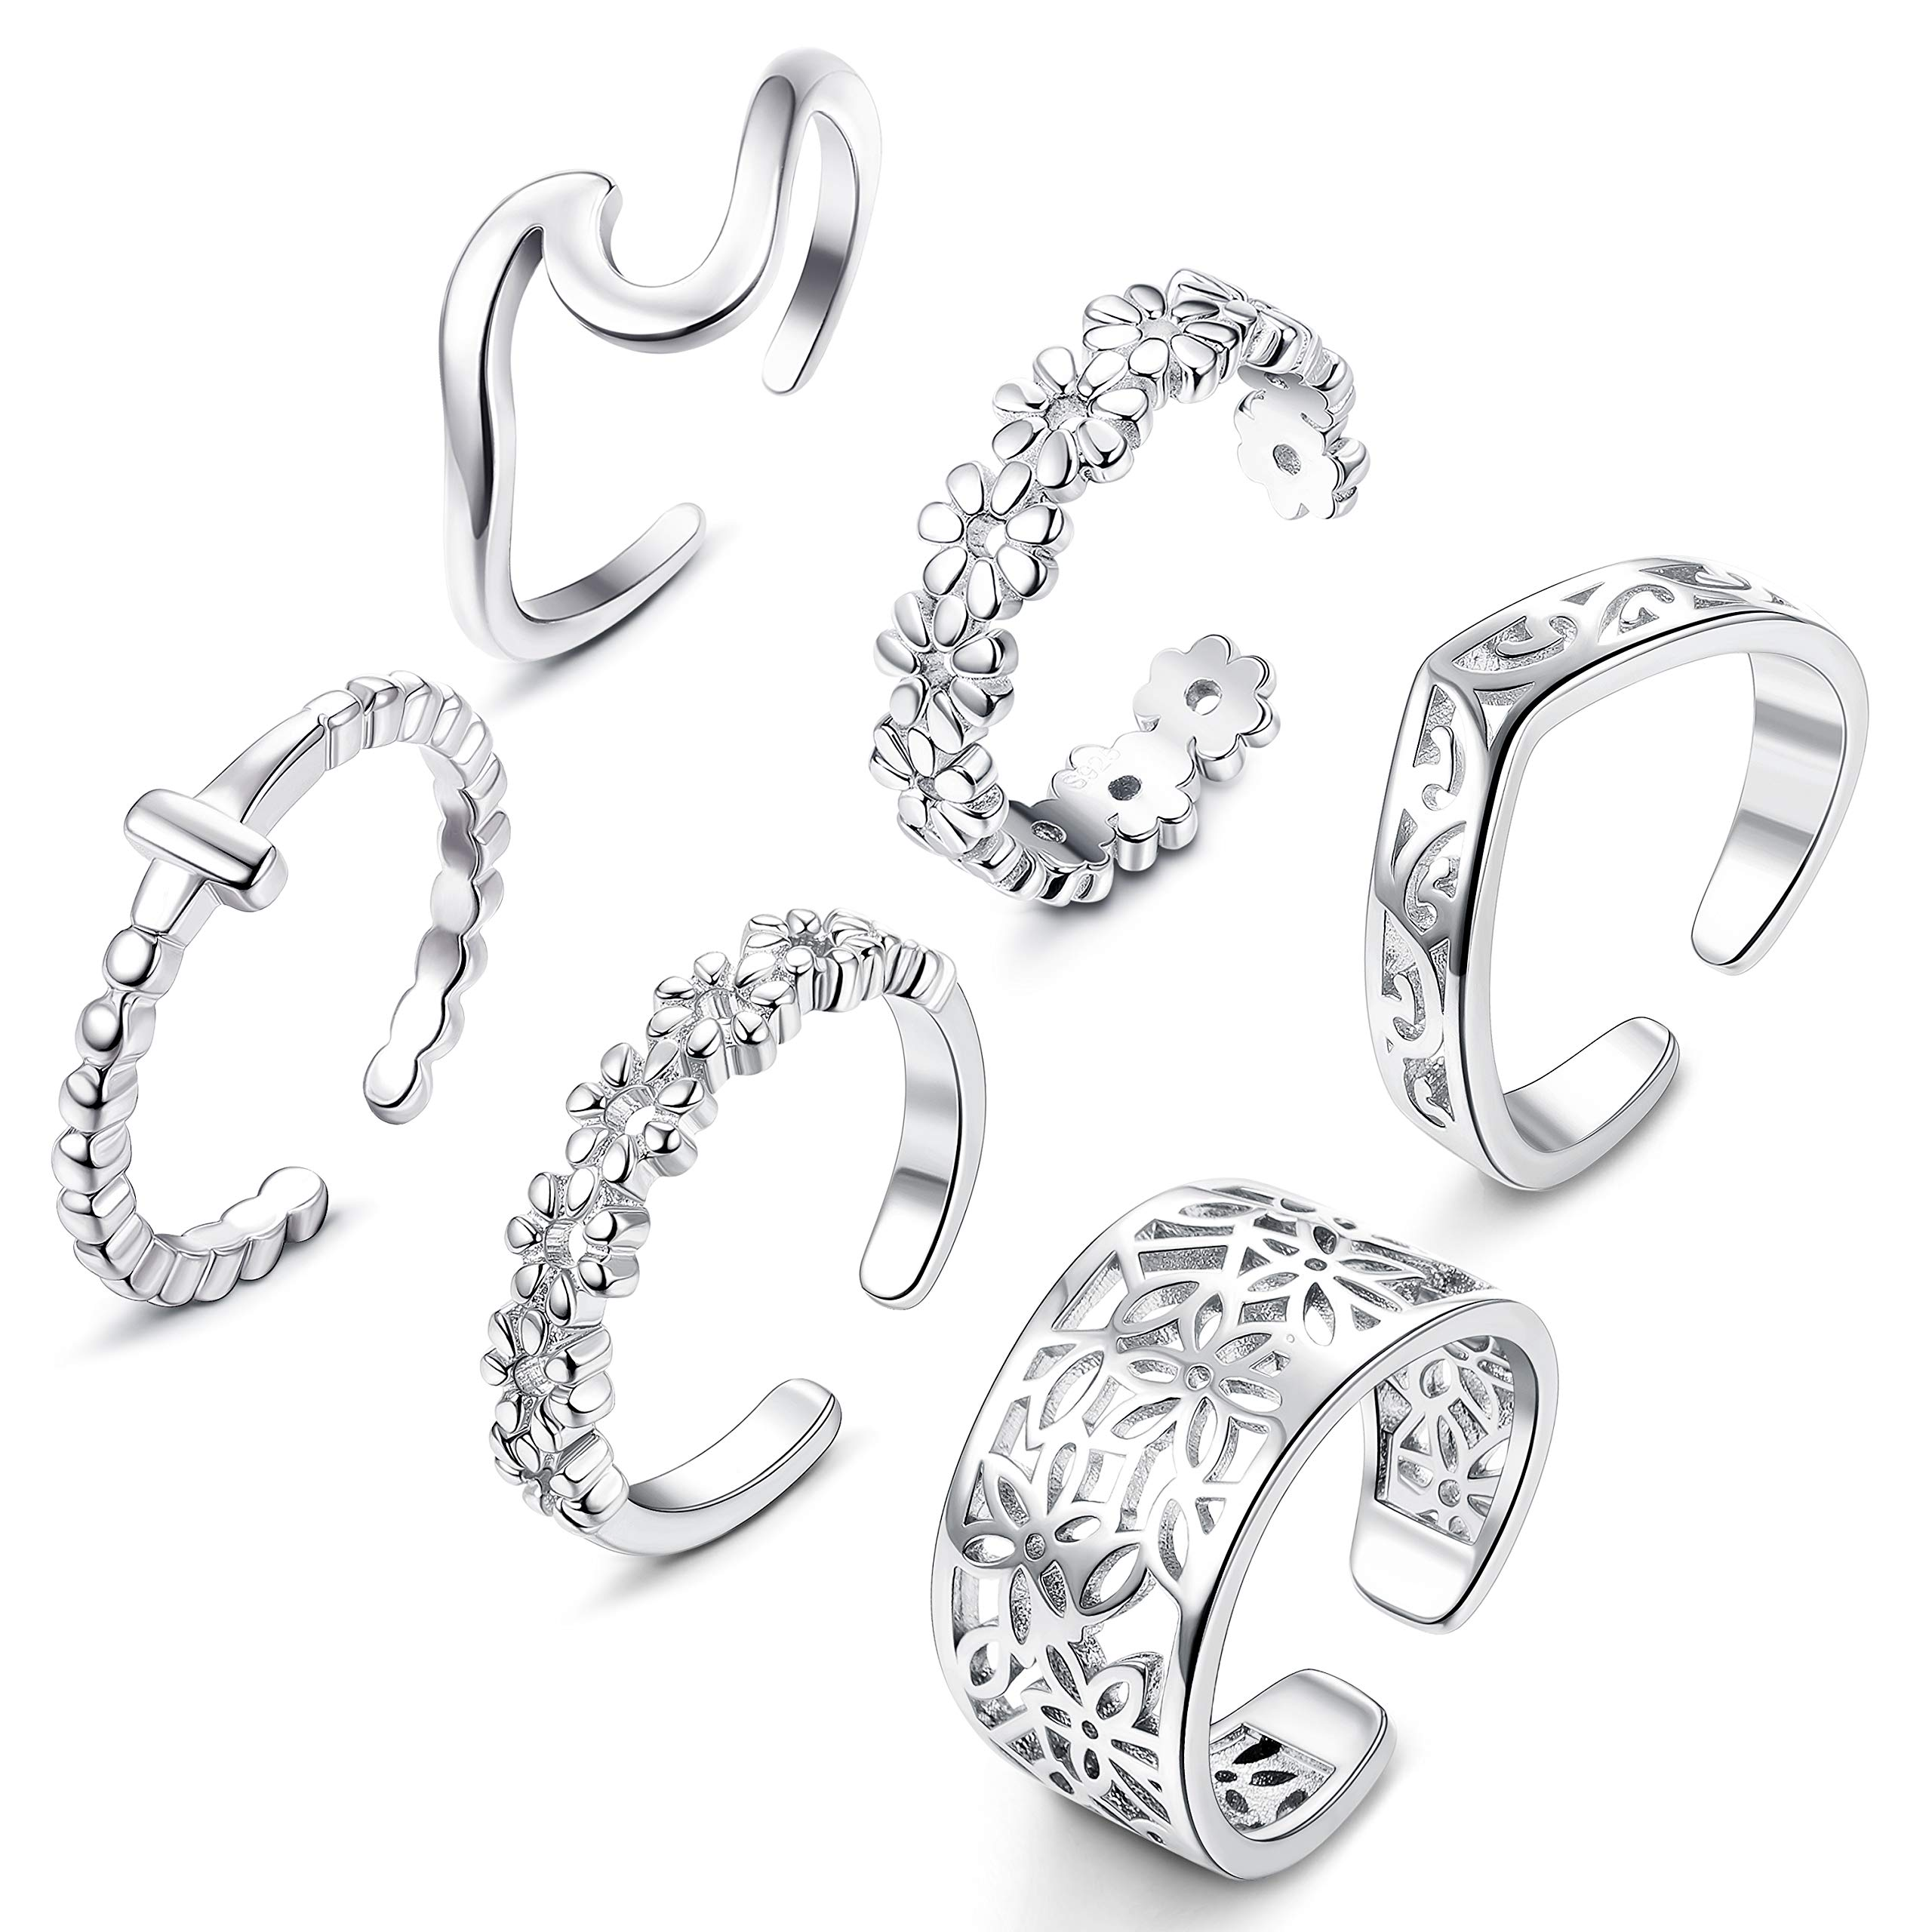 JOERICA 6 Pcs Toe Rings Set for Women Adjustable Wave Flower Open Tail Ring Band Foot Jewelry